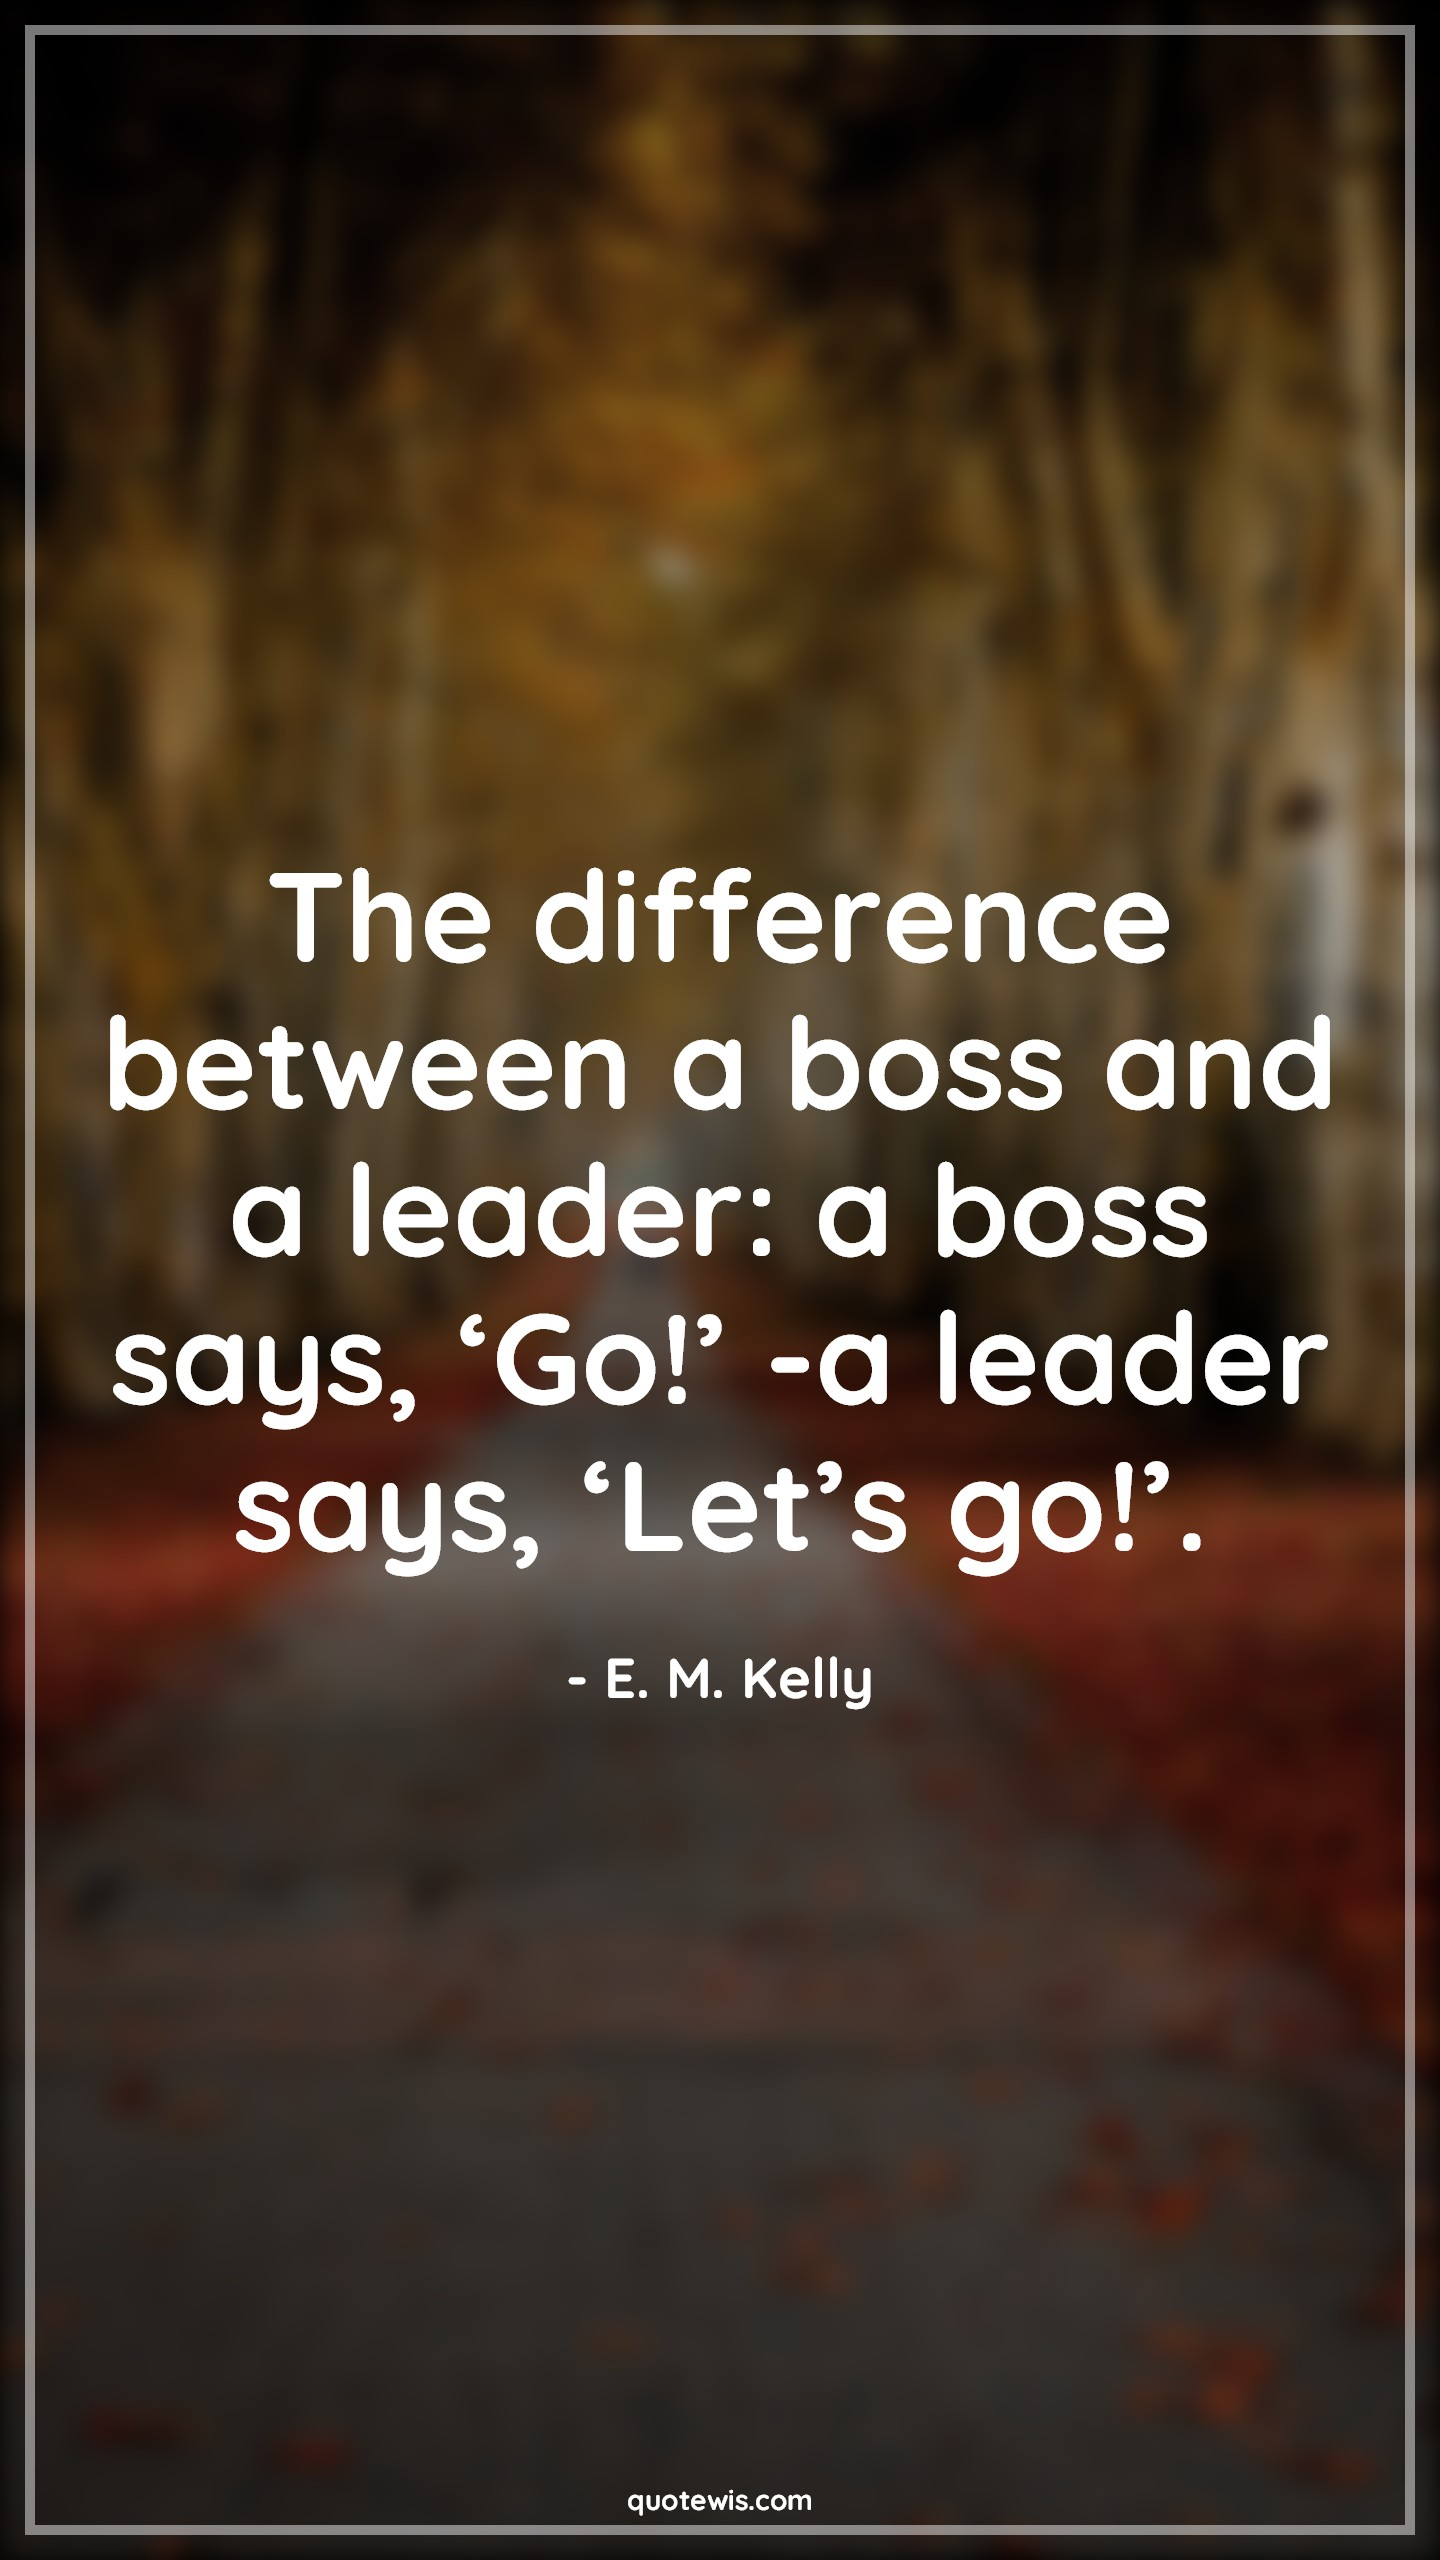 The difference between a boss and a leader: a boss says, 'Go!' -a leader says, 'Let's go!'.